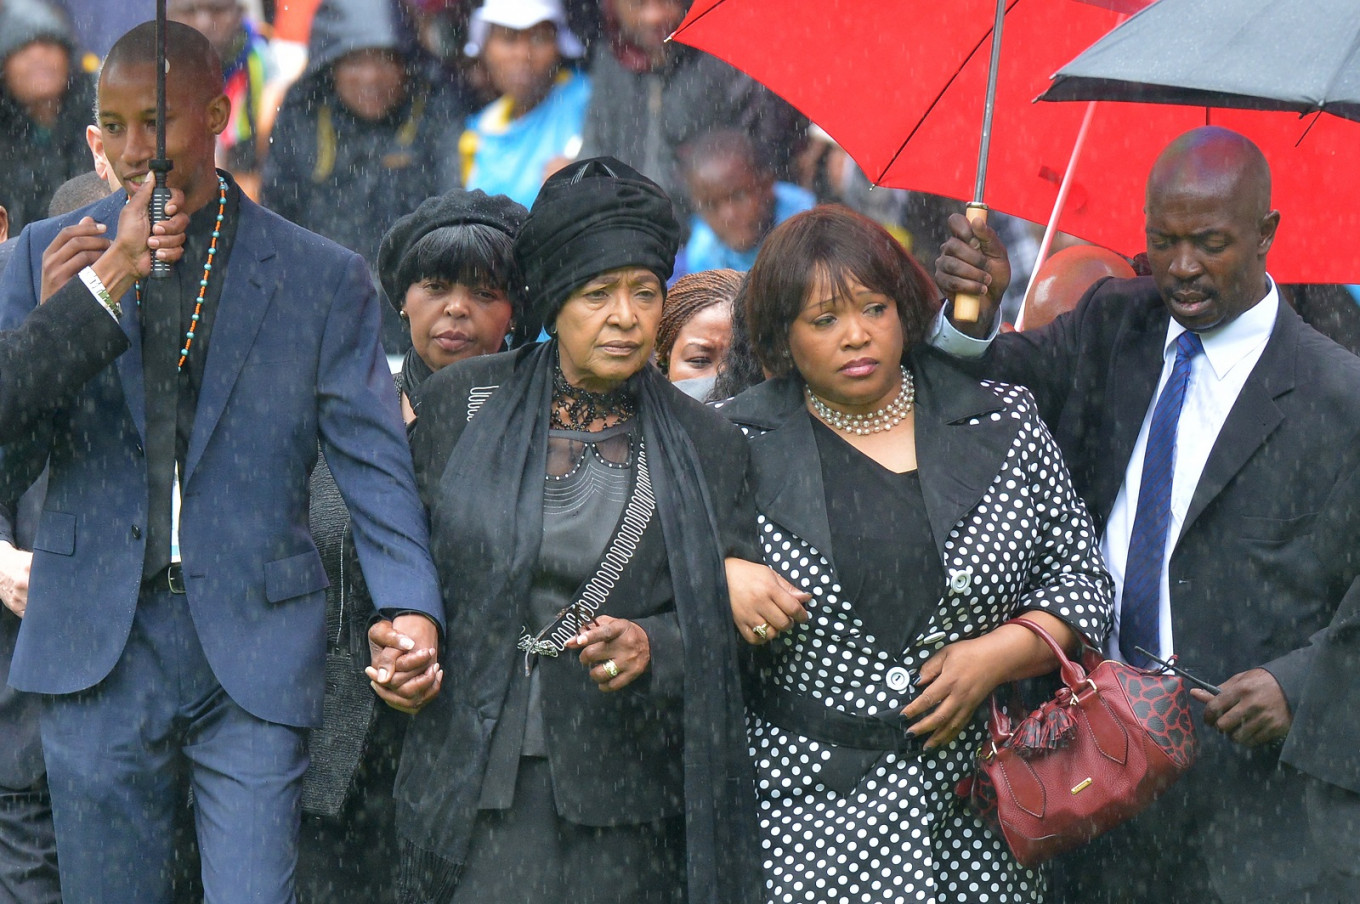 Zindzi Mandela, daughter of Nelson Mandela, has died: ANC spokesman